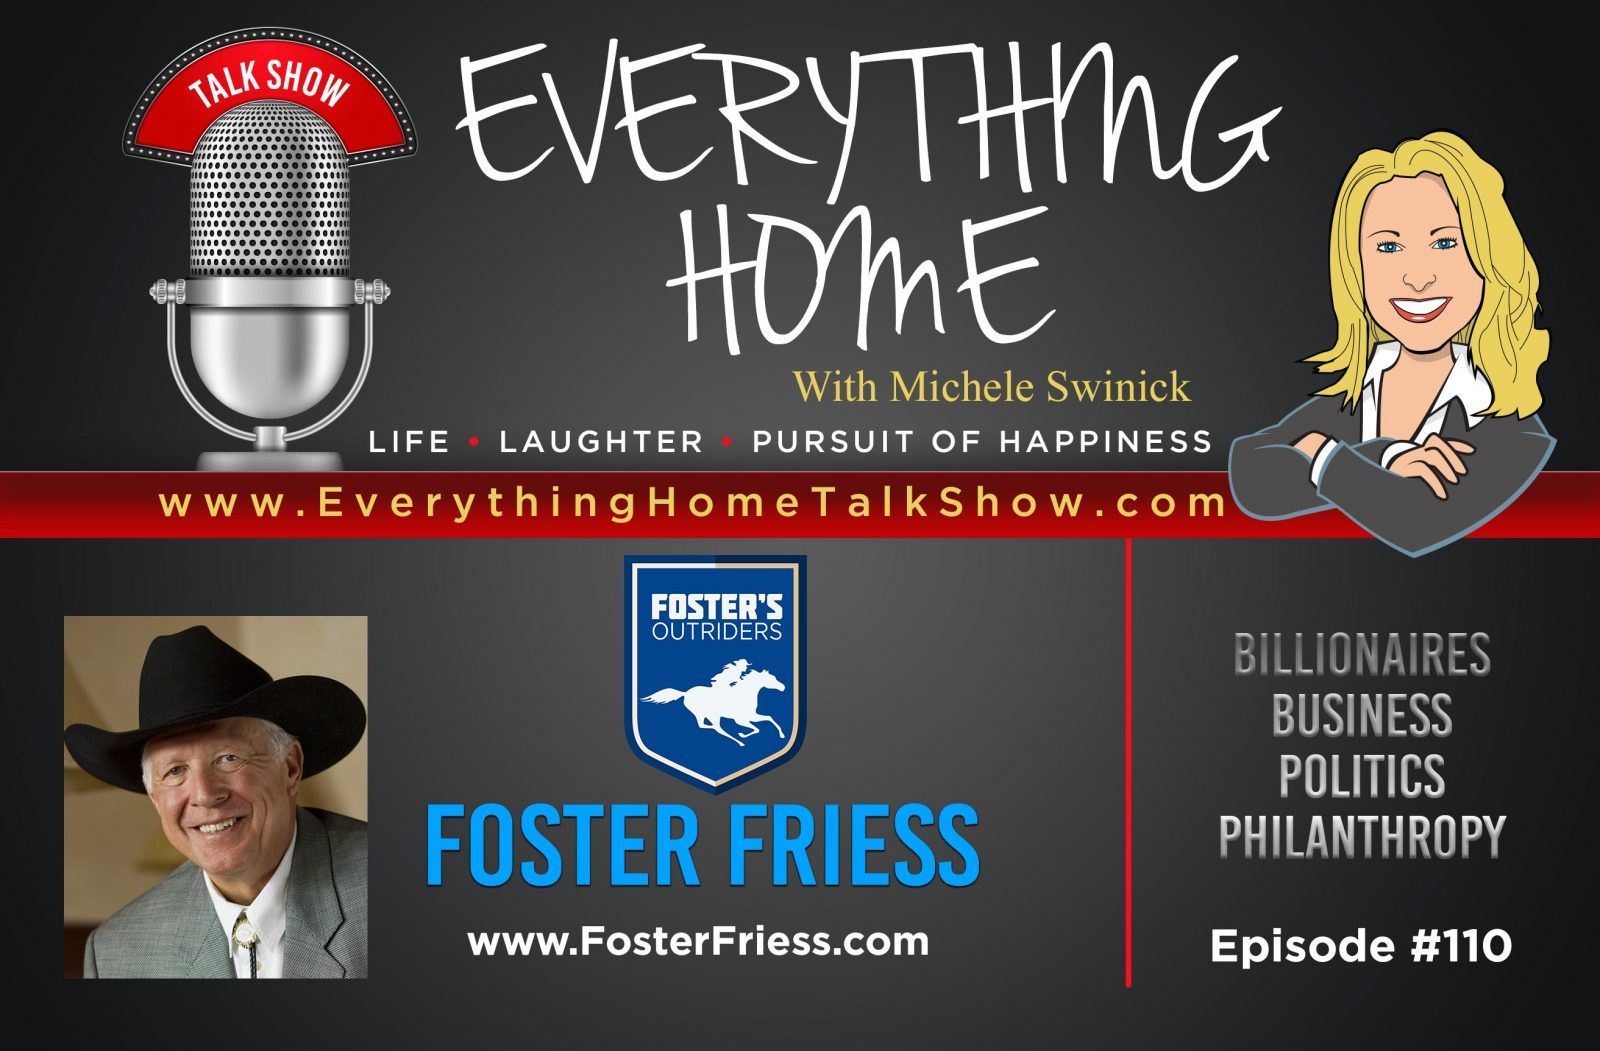 FOSTER FRIESS - Everything Home Talk Show